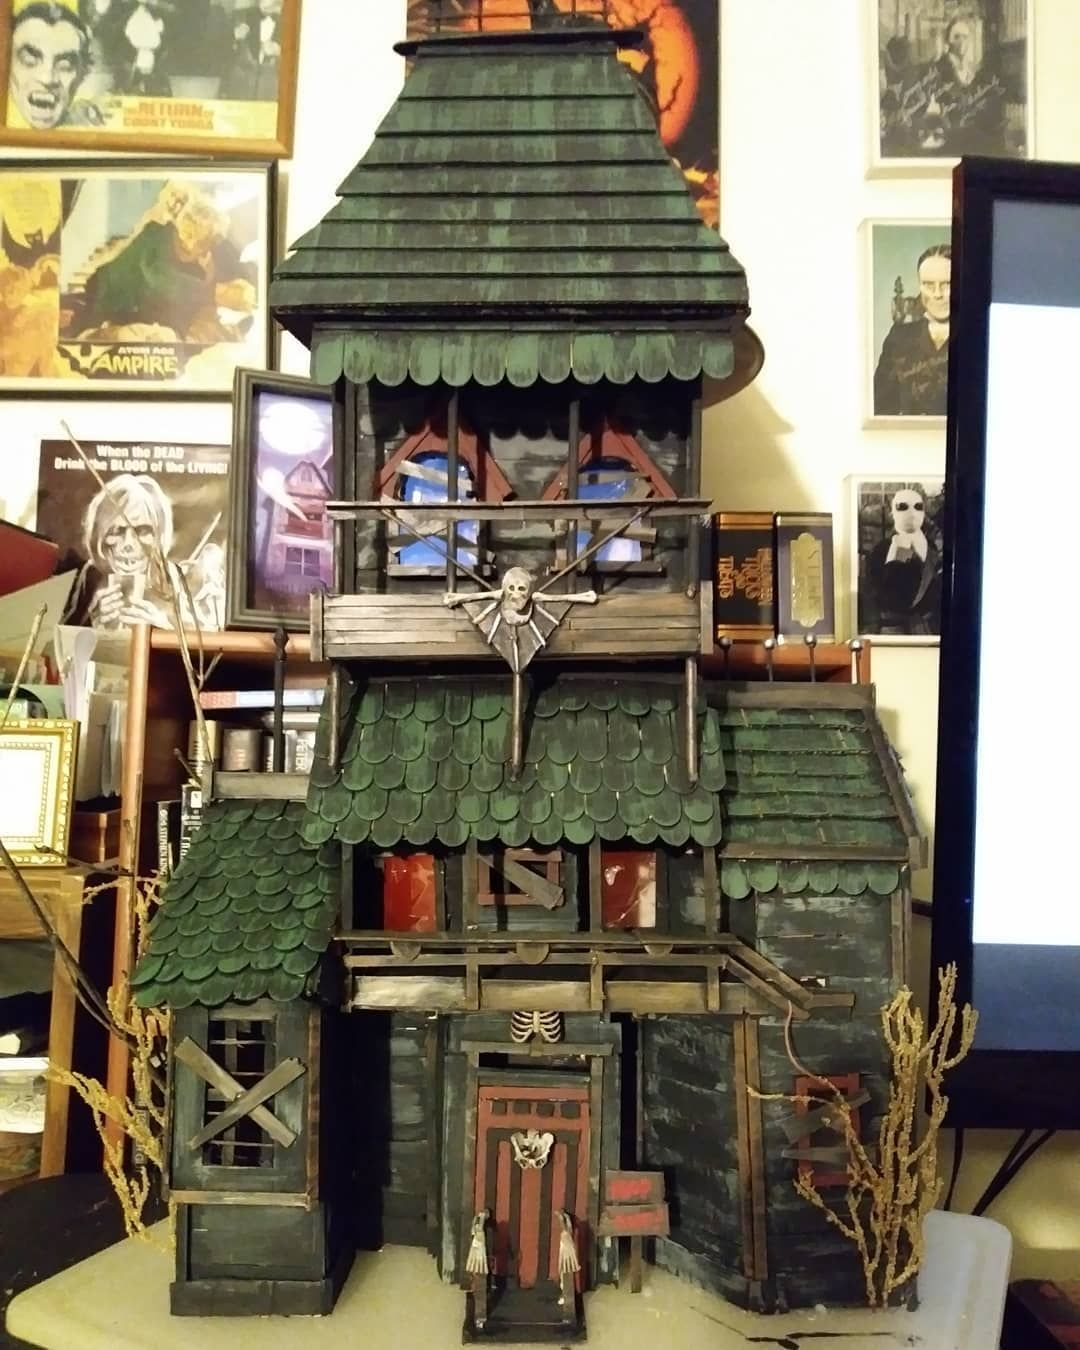 I always wanted to have a haunted dollhouse... So I made one! 5 days of glue gun burns, measuring and cutting. I made this totally out of craft sticks, cereal boxes, and various odds and ends. Total height, 3 feet, total cost to make, about $10.00! #hauntedhouse #halloween #halloweencrafts #creepycrafts #horrorislife #creepyhouse #dyihalloween #diyhalloweendecorations #gothlife #craftymom #haunteddollhouse #miniatures #everydayishalloween #halloweendecorations #haunteddollhouse I always wanted t #haunteddollhouse